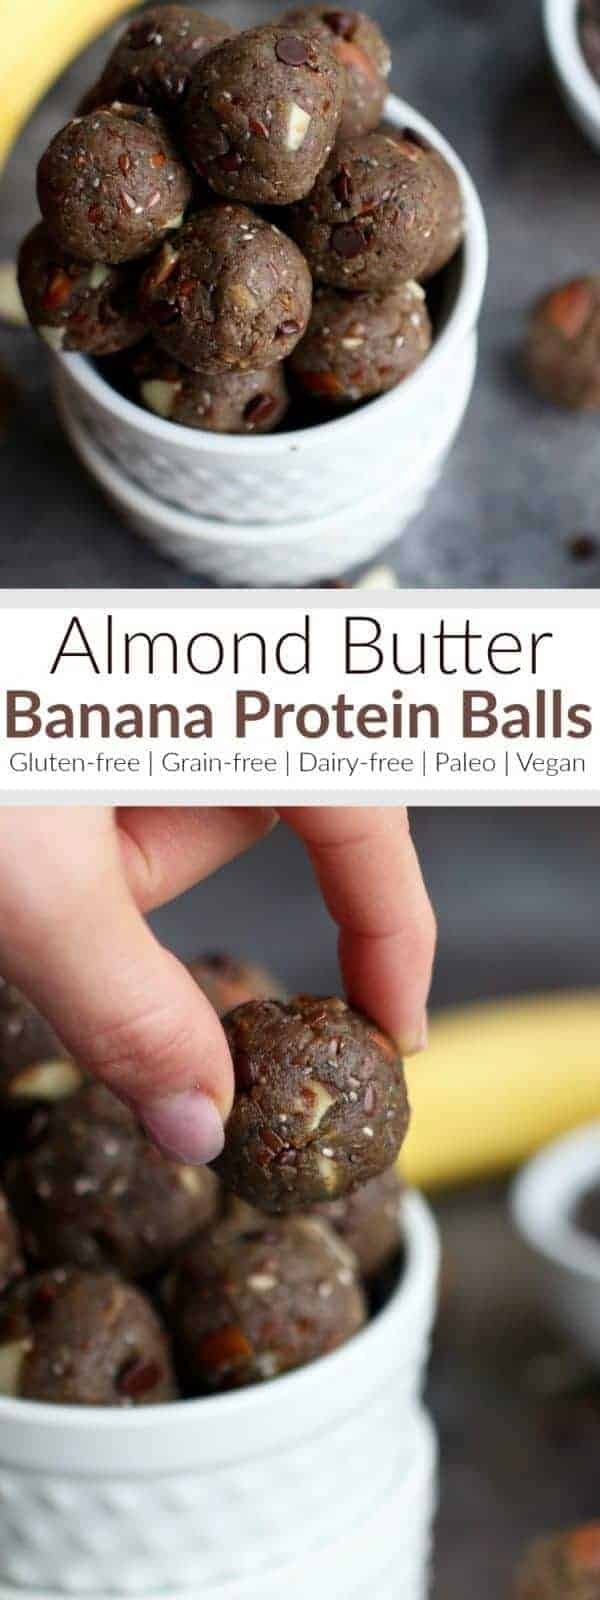 Almond Butter Banana Protein Balls are the perfect bite size snack that contain a healthy source of proteins, fats and carbs and with 5 grams of fiber and only 5 grams of sugar per serving they make for a great pre-workout snack or a sensible after dinner treat. | Paleo | Gluten-free | Grain-free | Dairy-free | Vegan-friendly | therealfoodrds.com